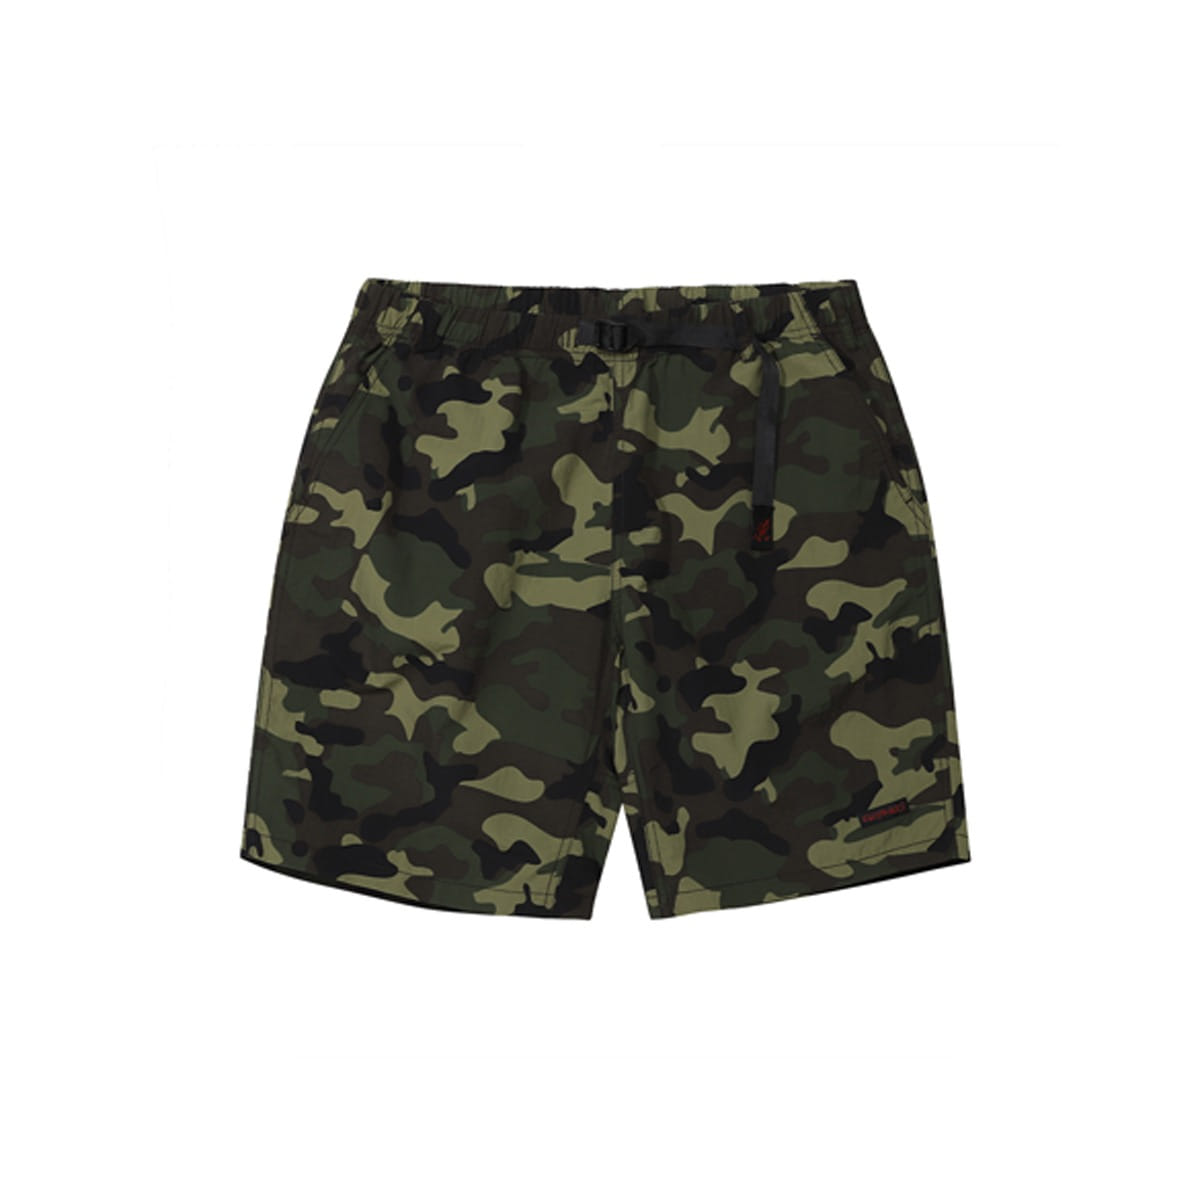 [GRAMICCI] SHELL PACKABLE SHORTS 'CAMO'